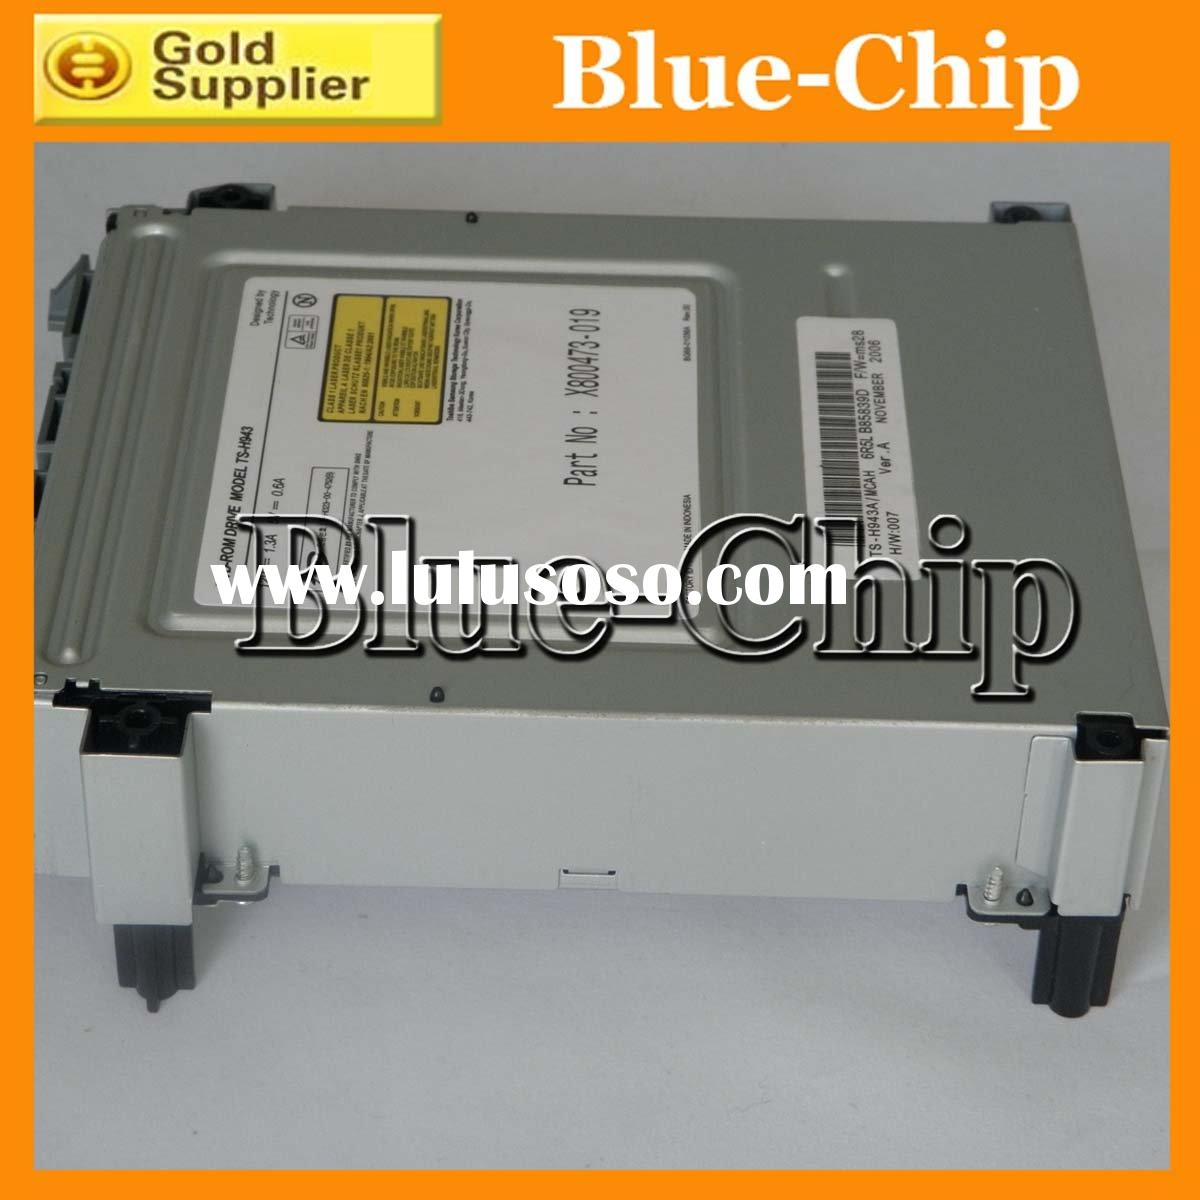 Ver 74850C Lite-On DVD Drive Liteon DG-16D2S for XBOX360